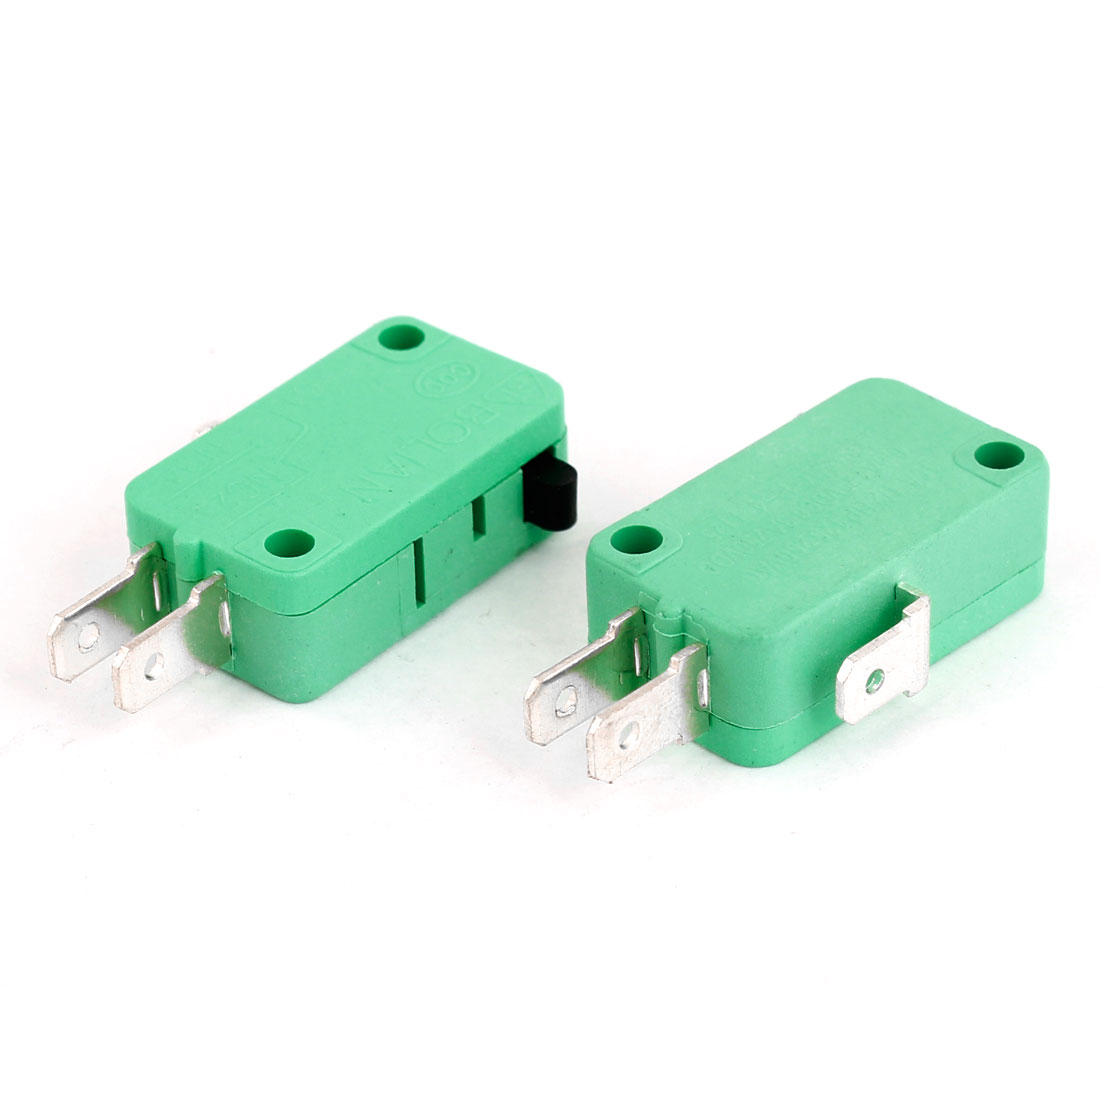 2 Pcs 3 Pin 3-Terminals Push Button Actuator SPDT Micro Switch Green